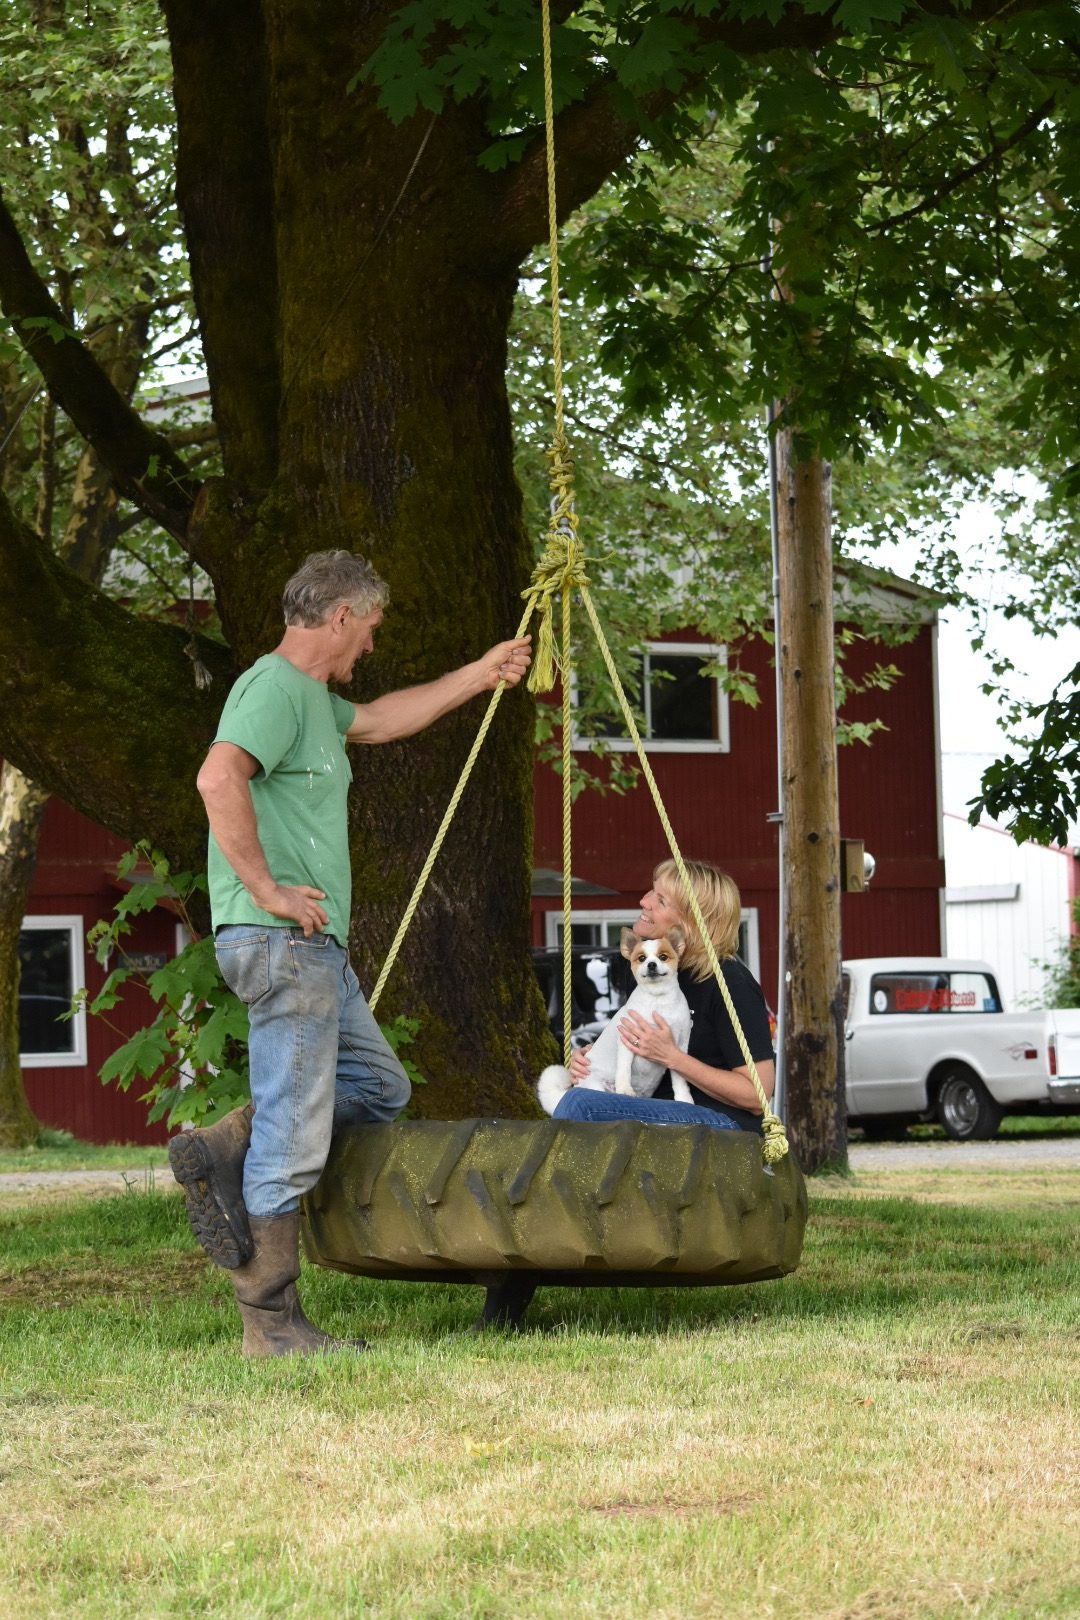 Karen van Tol holds their dog while sitting in a tire swing talking to Gerrit.